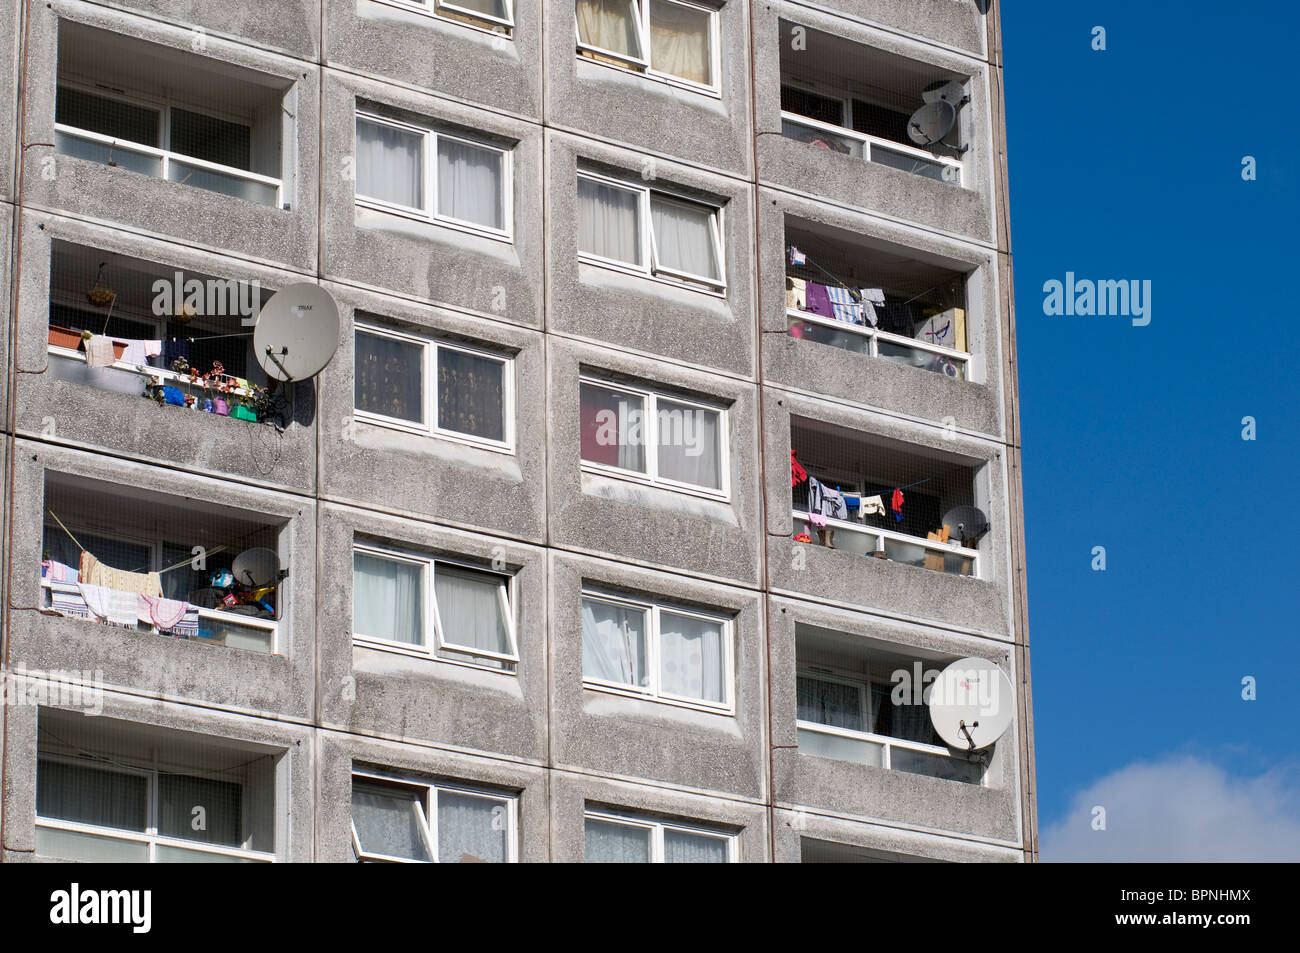 Local Authority, Council Tower Block, Brent, London, United Kingdom - Stock Image